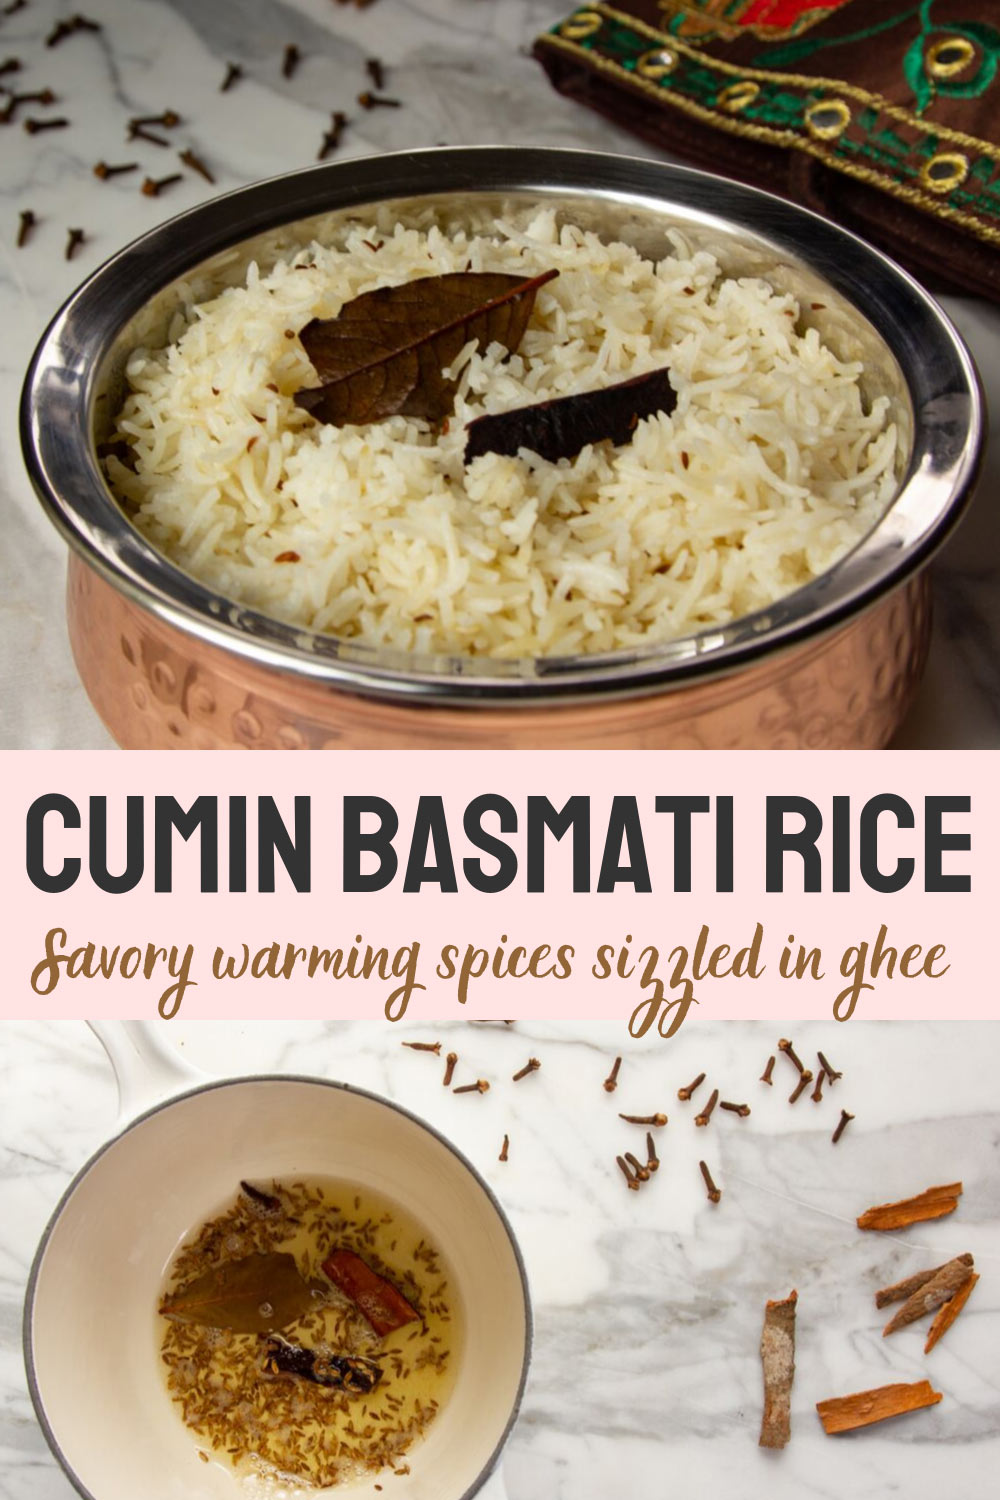 Cumin rice is a delicately spiced basmati rice—fragrant with impossibly long grains—and the perfect compliment for Indian food like dal and curries. #rice #basmati #indianfood #indianrecipe #dinnerside #cumin #spices #butteredveg